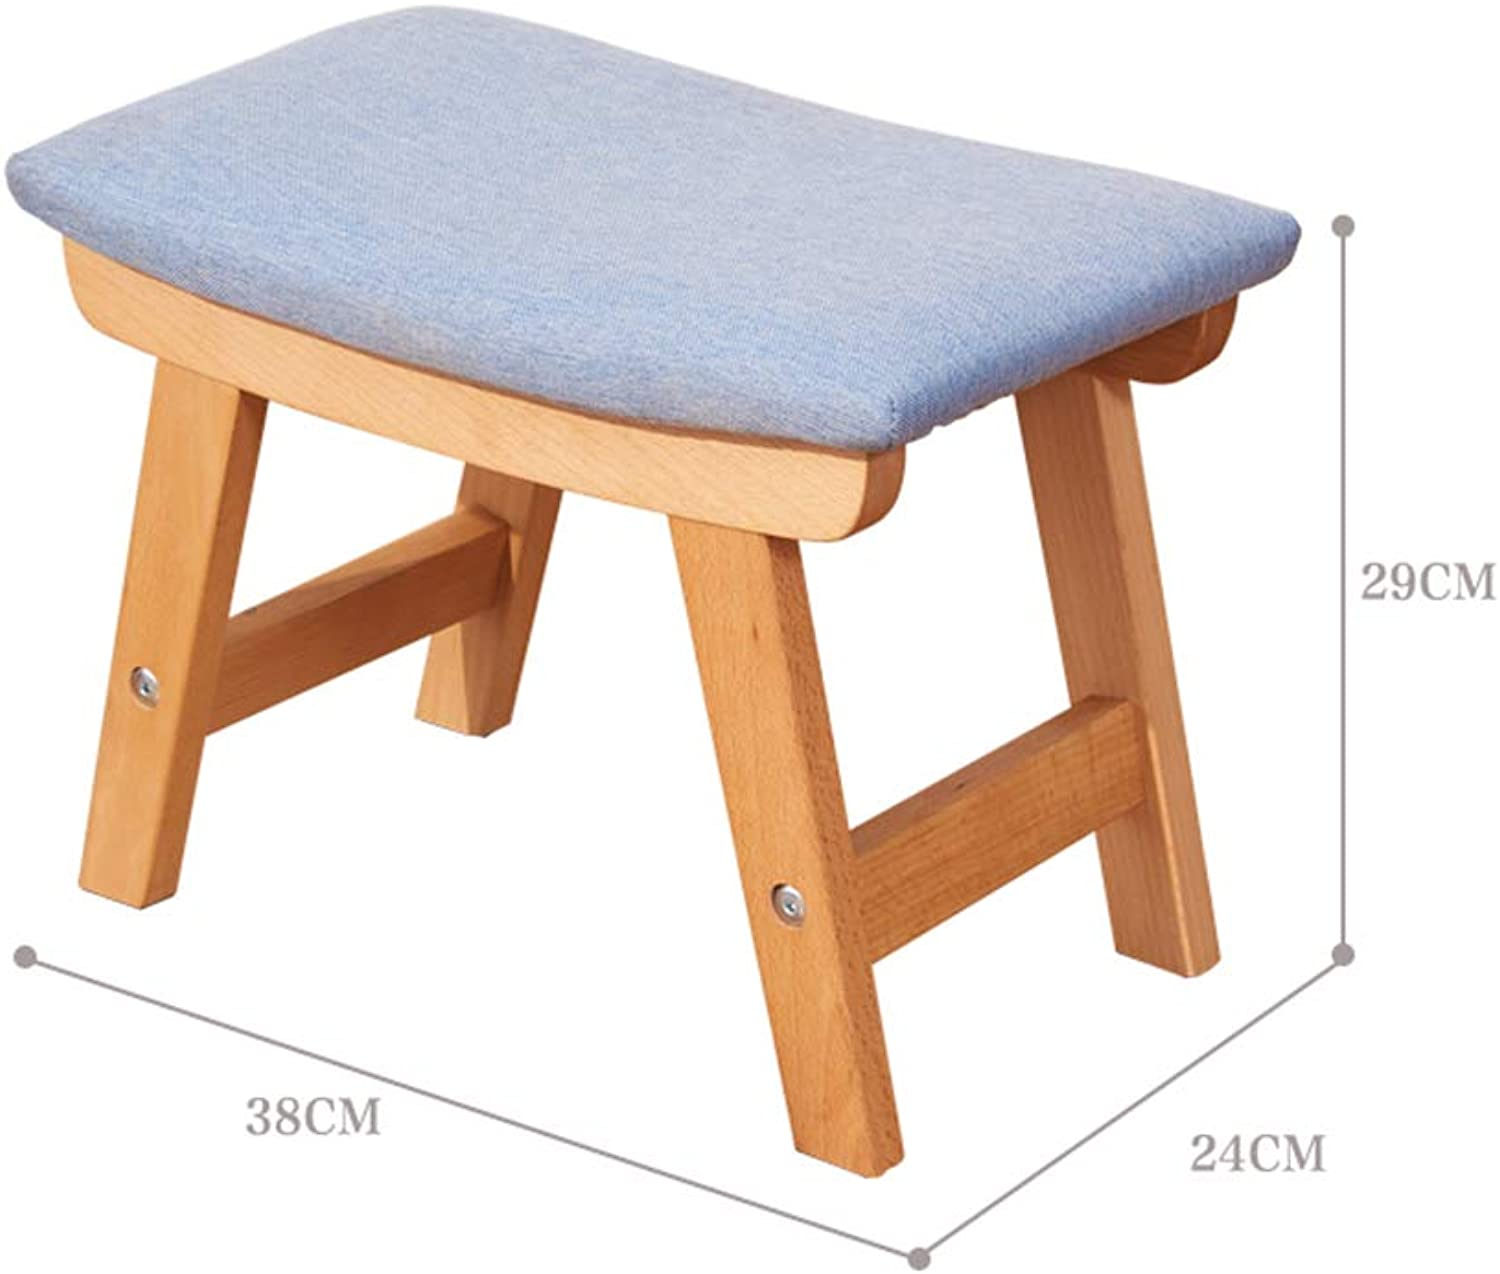 Stools Footstool Work Stool Step Stool Cotton and Linen Solid Wood Change shoes Washable Non-Slip mat Reinforce Surface ZHANGQIANG (color   bluee-Wood, Size   Large)